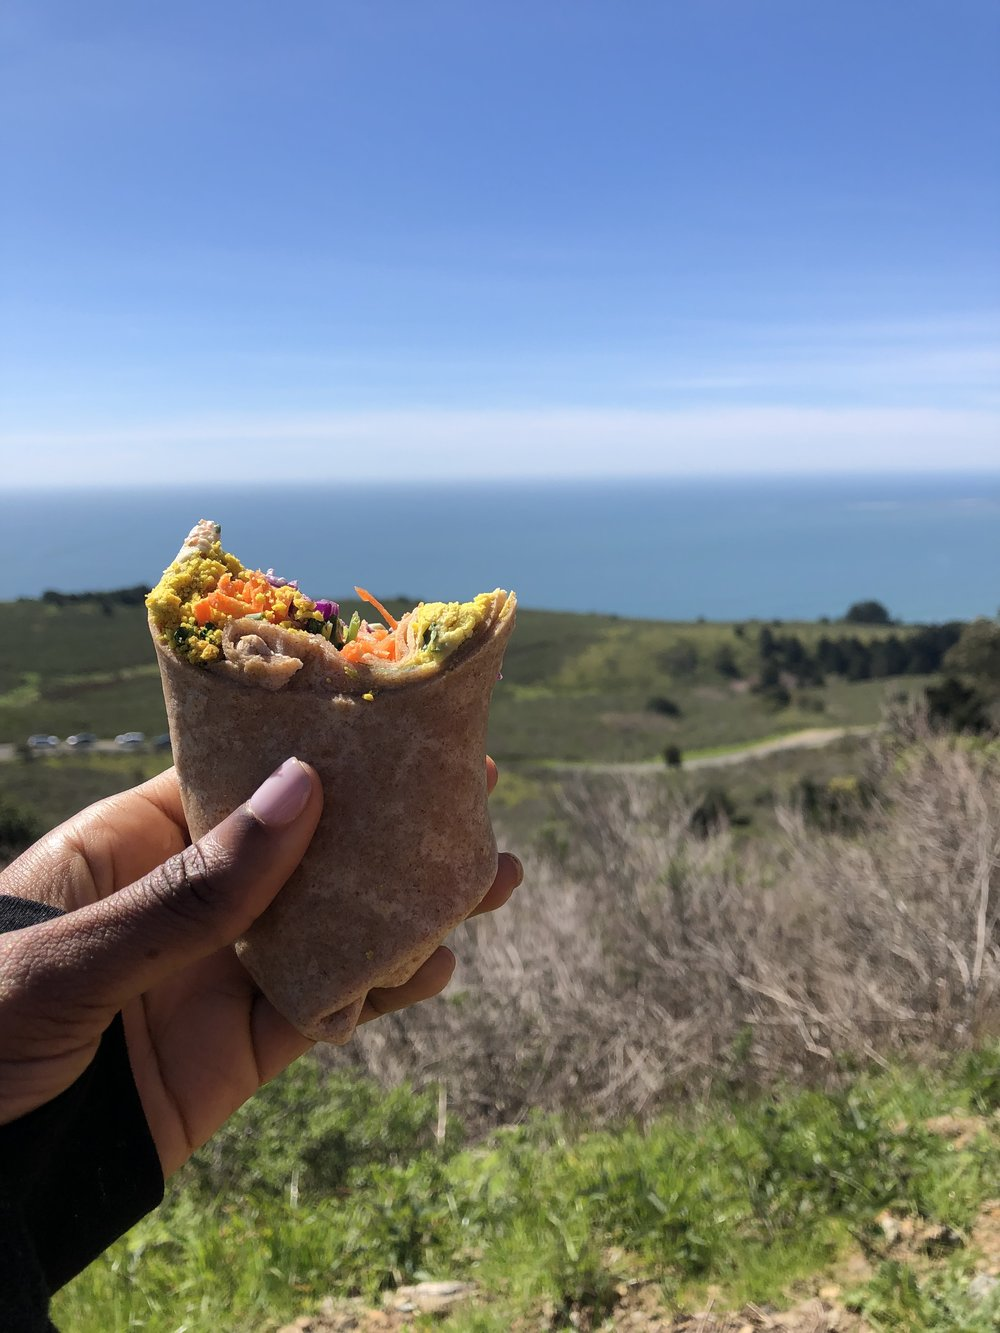 After the hike, we drove a quick 5 minutes to a spot to have a picnic lunch.